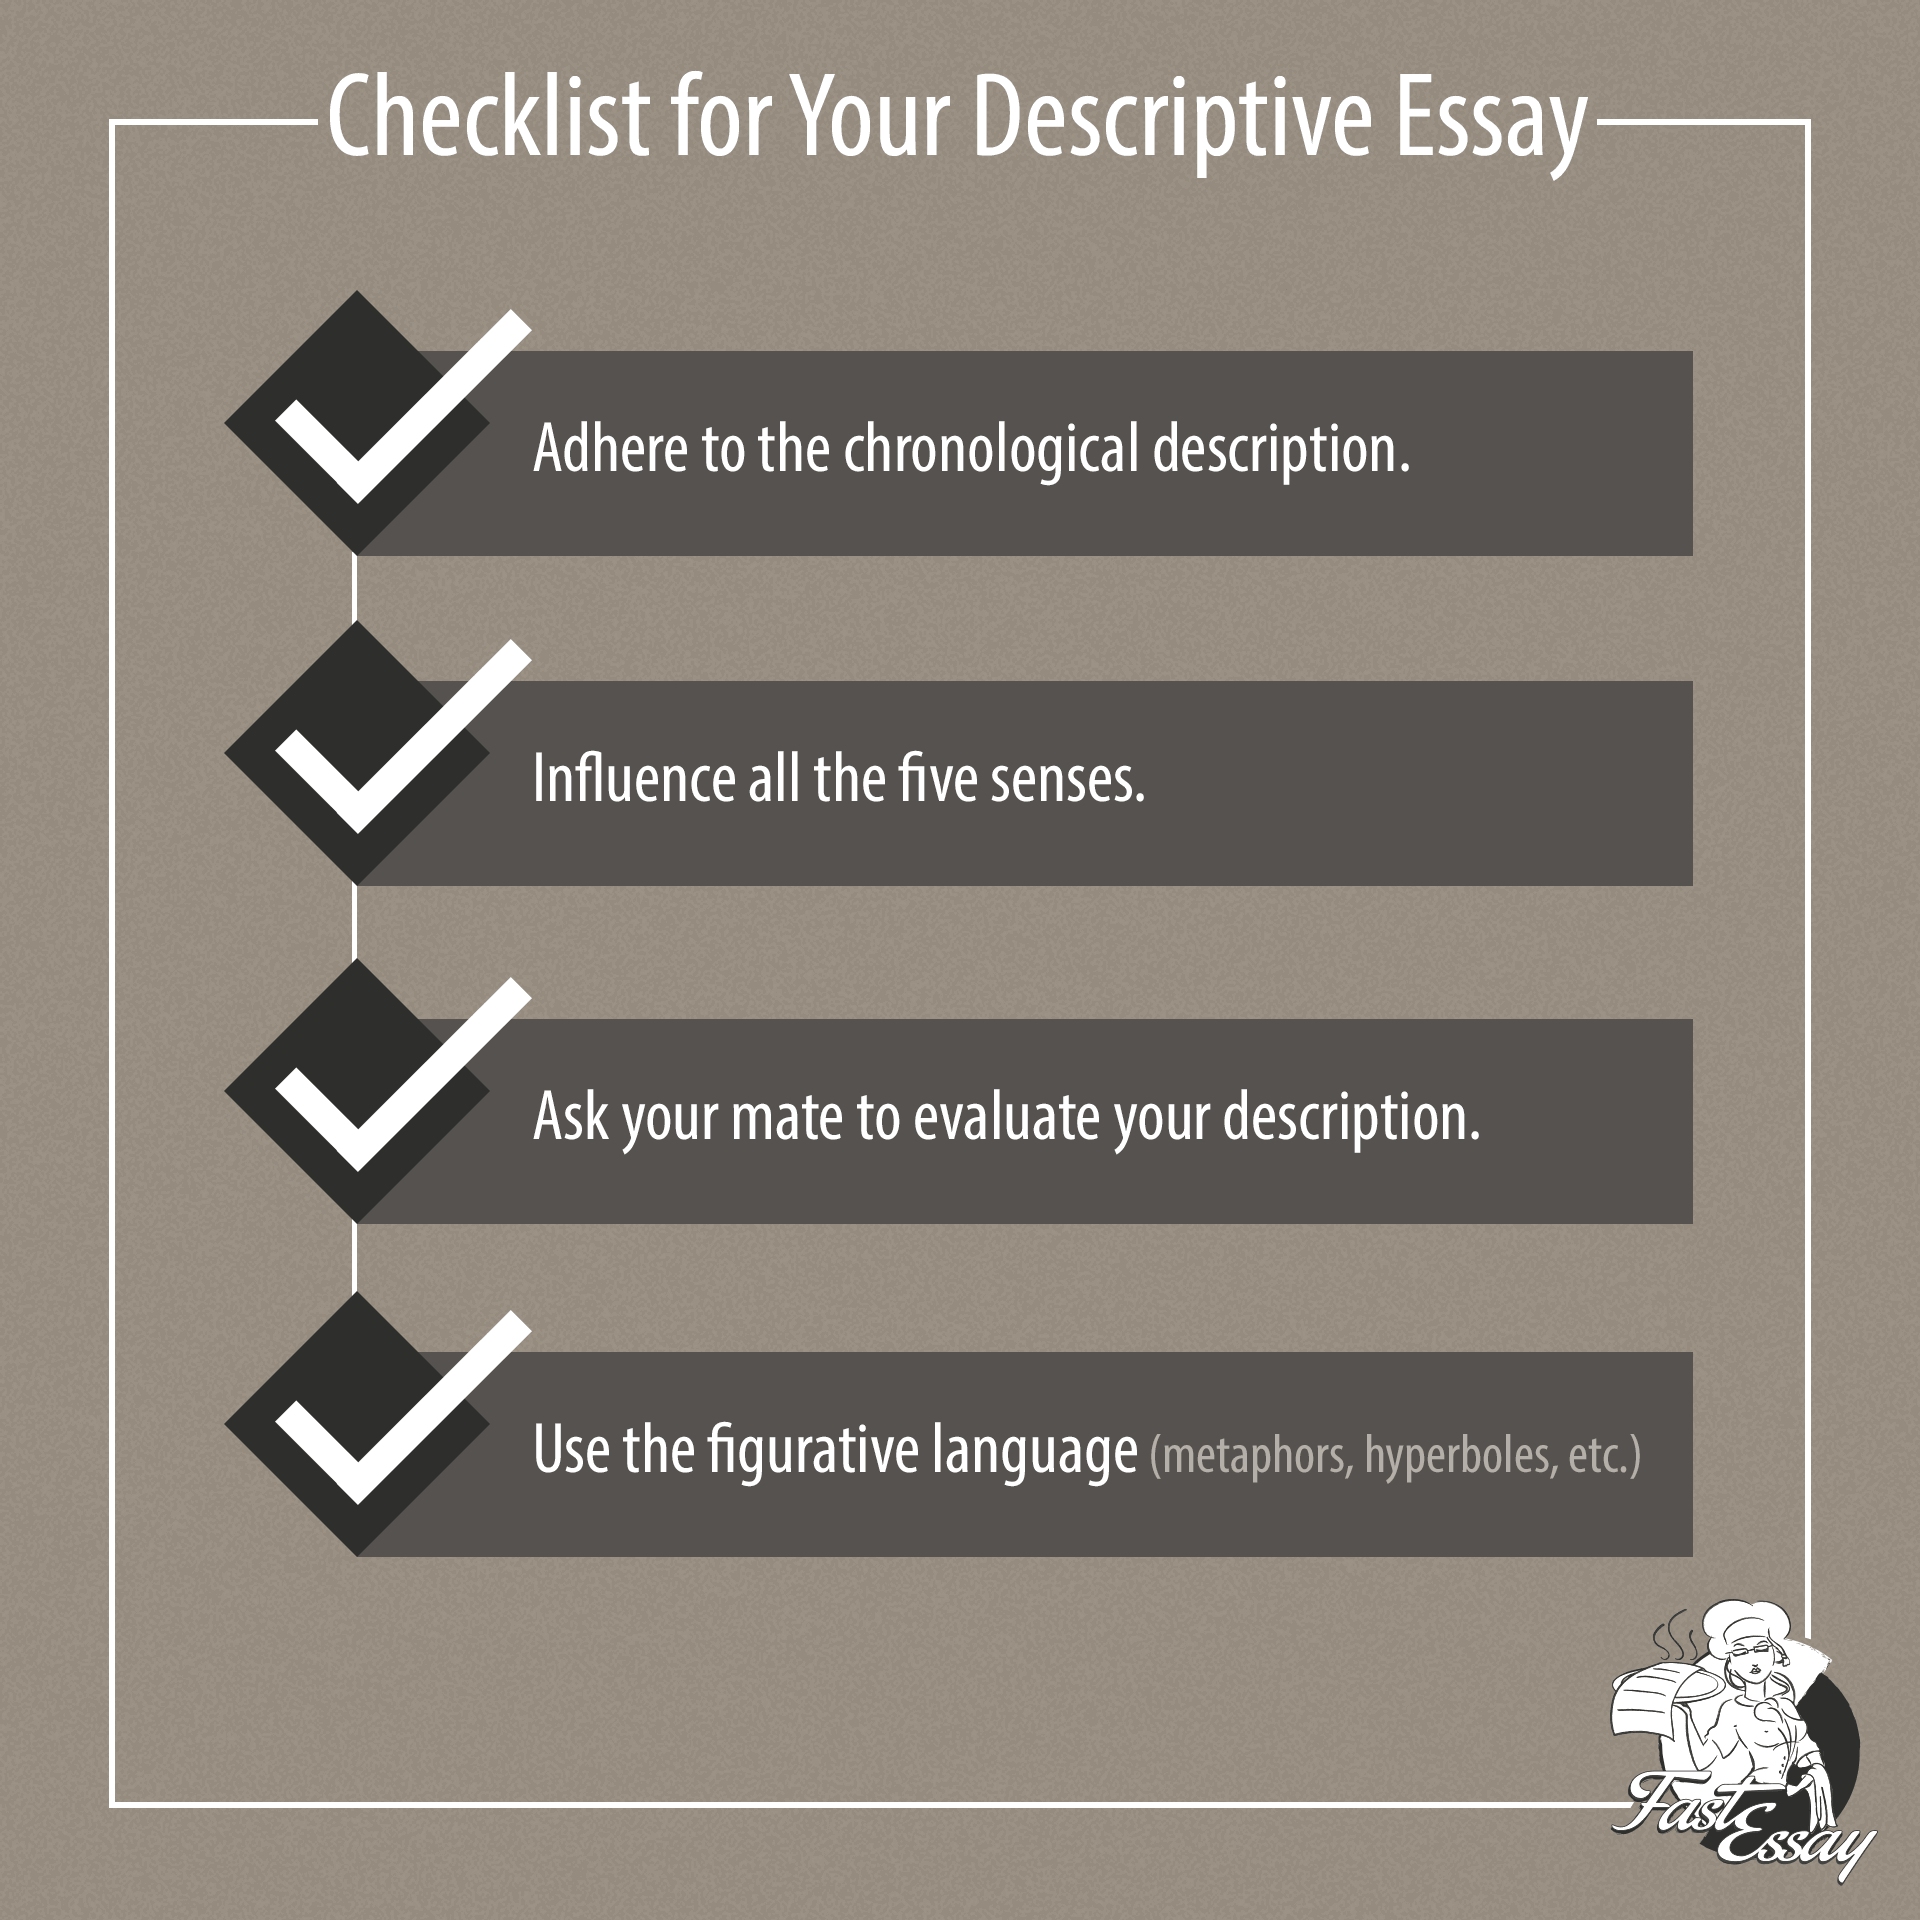 checklist for descriptive essay